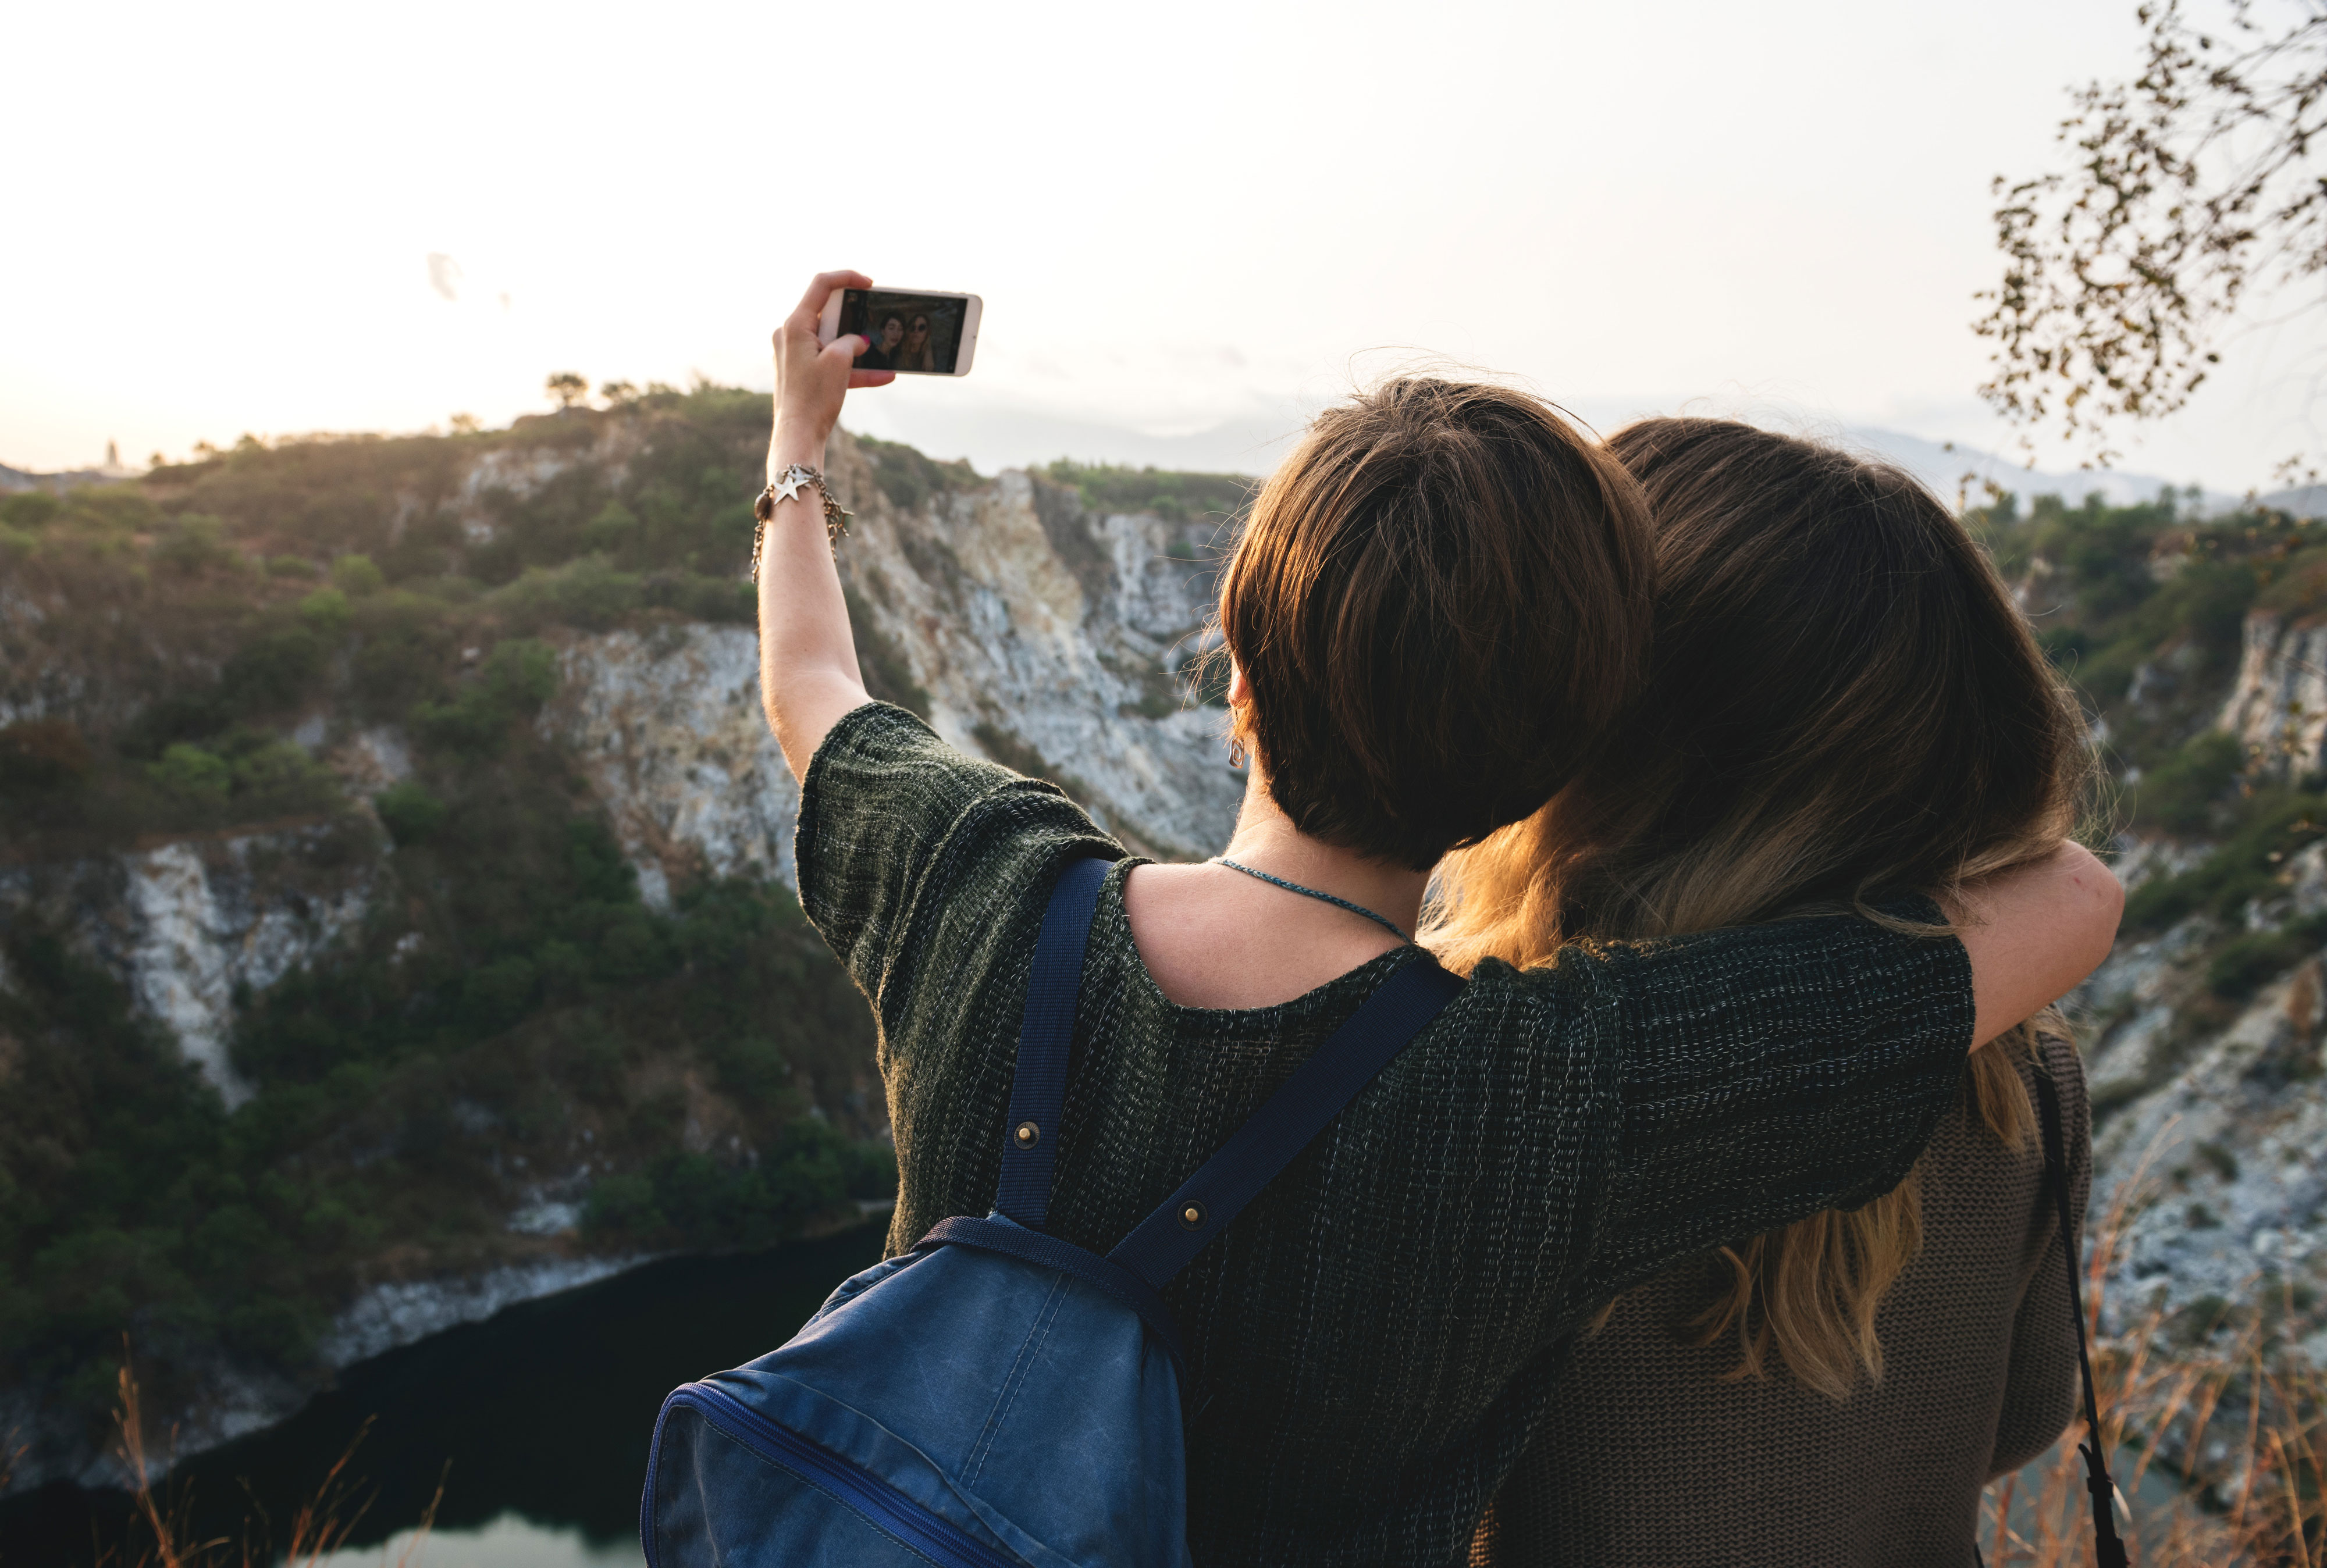 Couple take a selfie photograph in mountain landscape